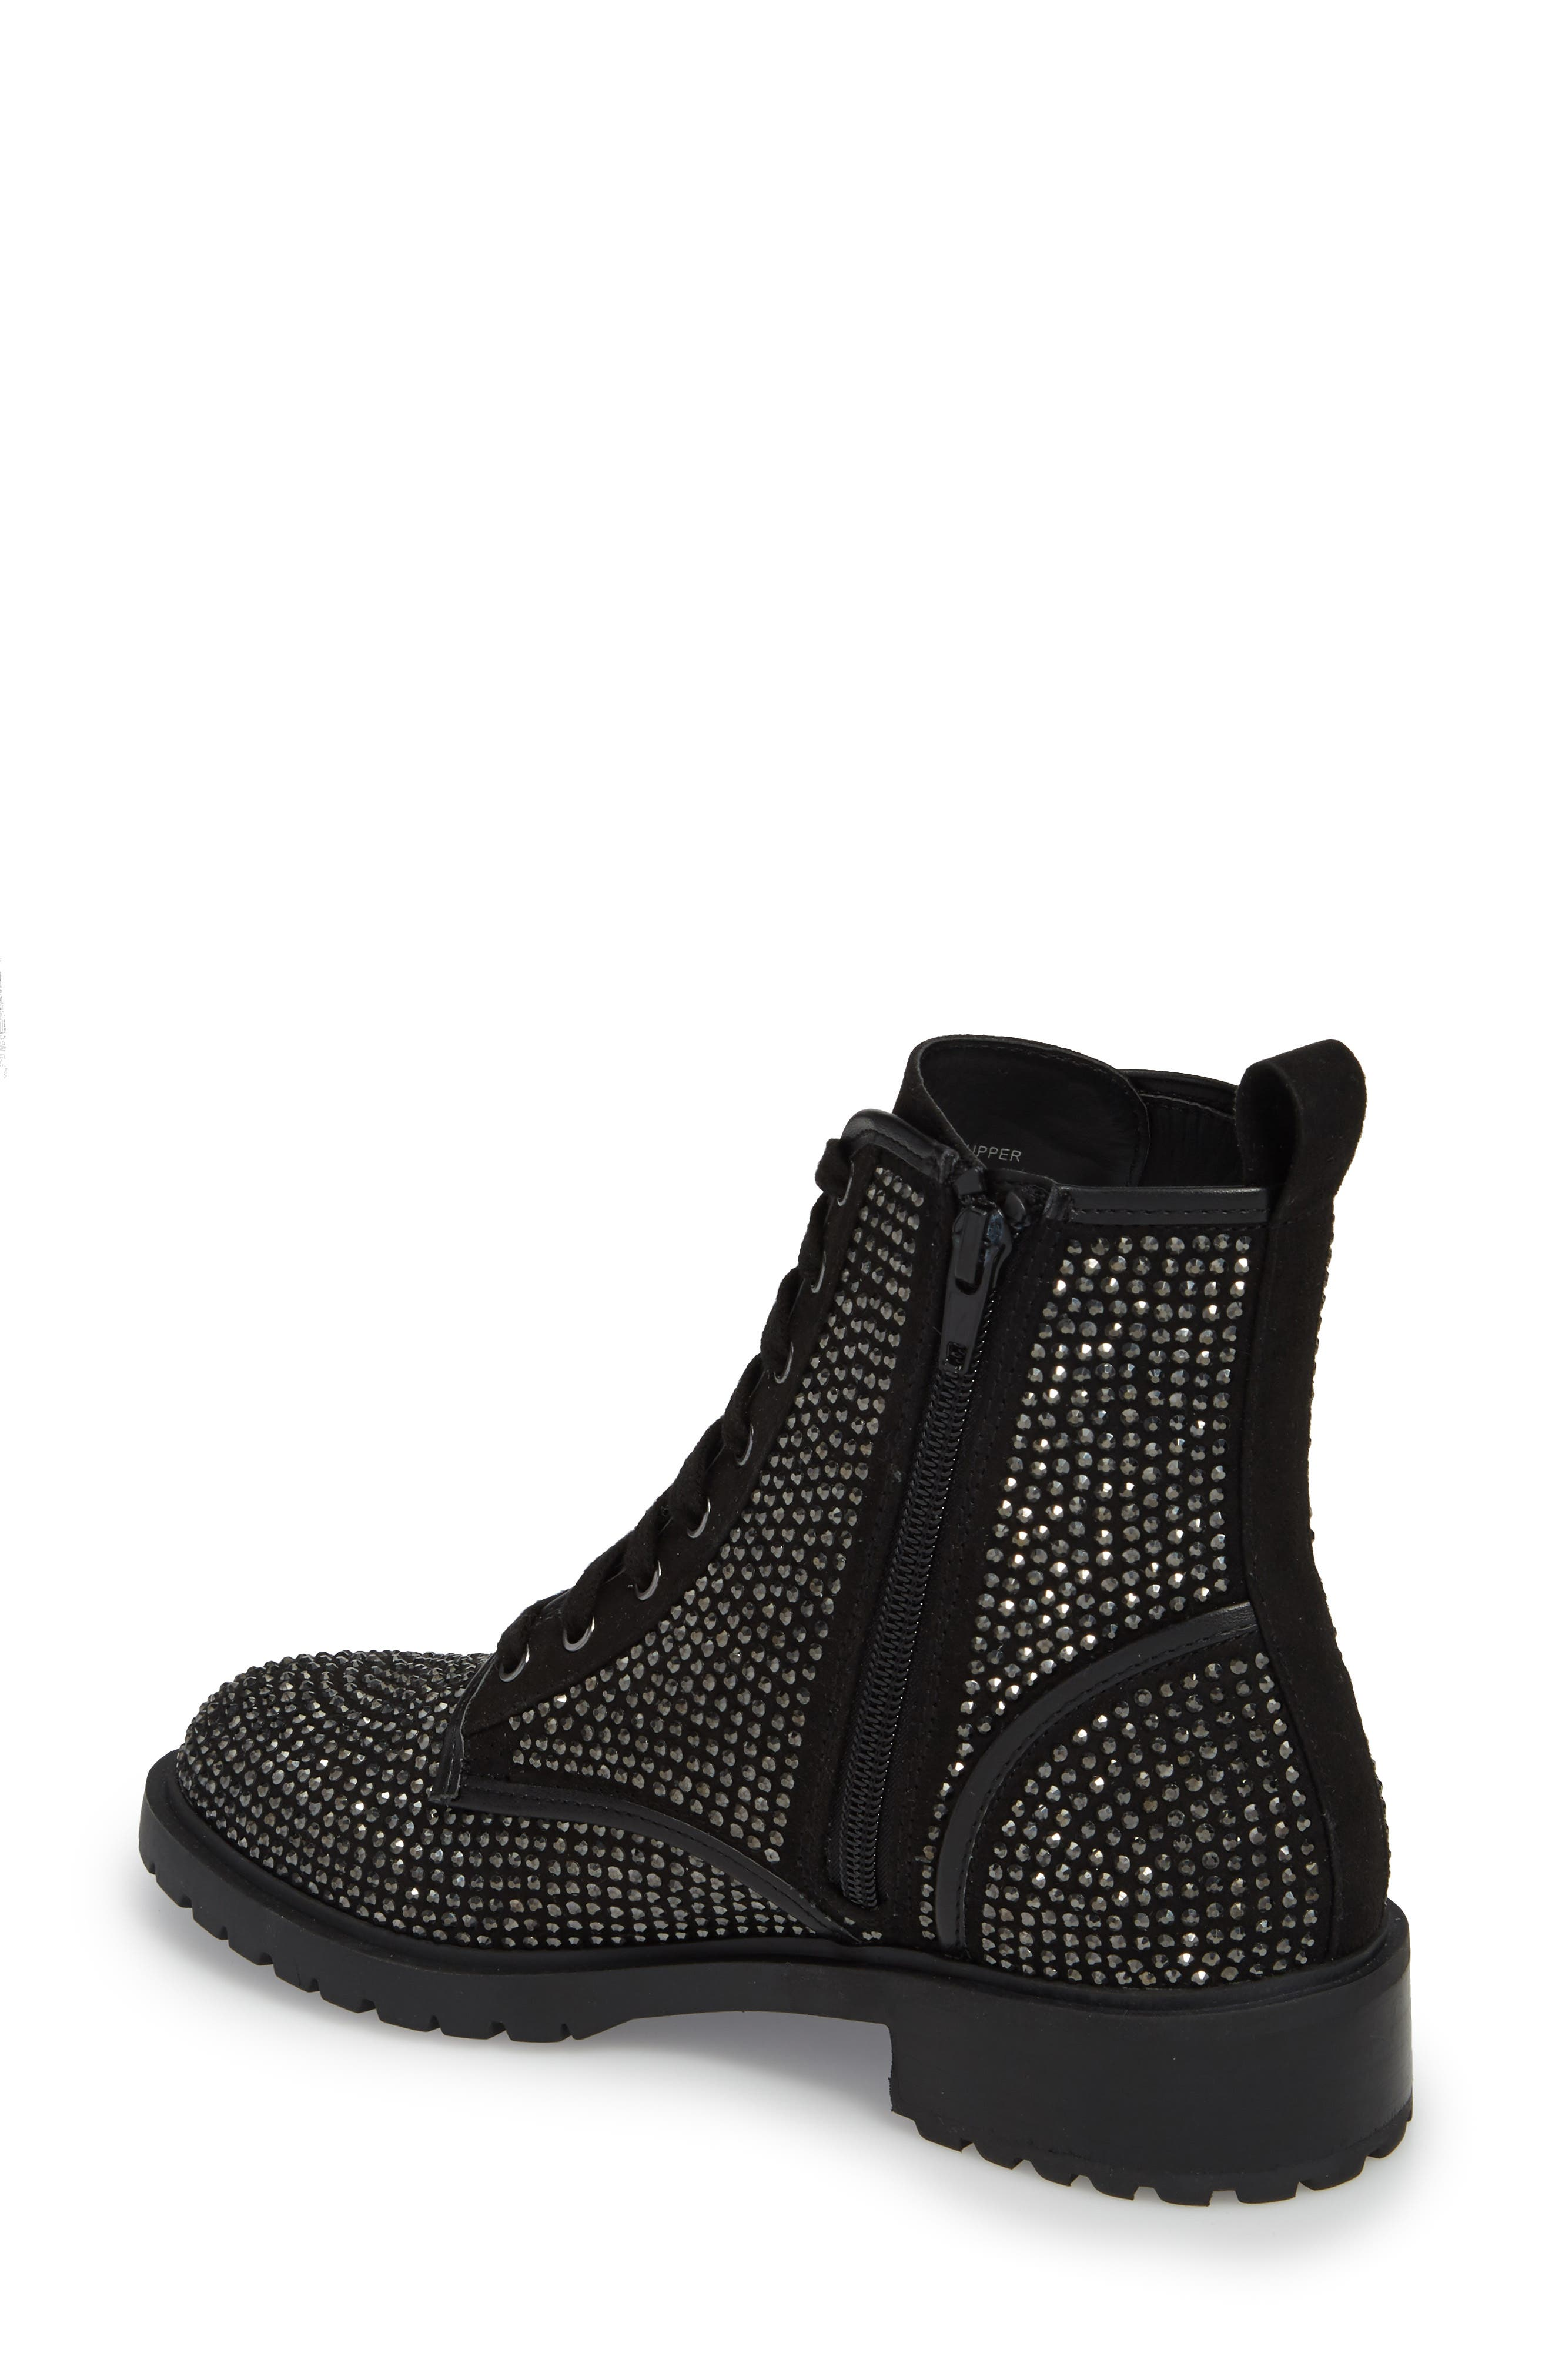 Ozzy Embellished Boot,                             Alternate thumbnail 2, color,                             Black Multi Suede